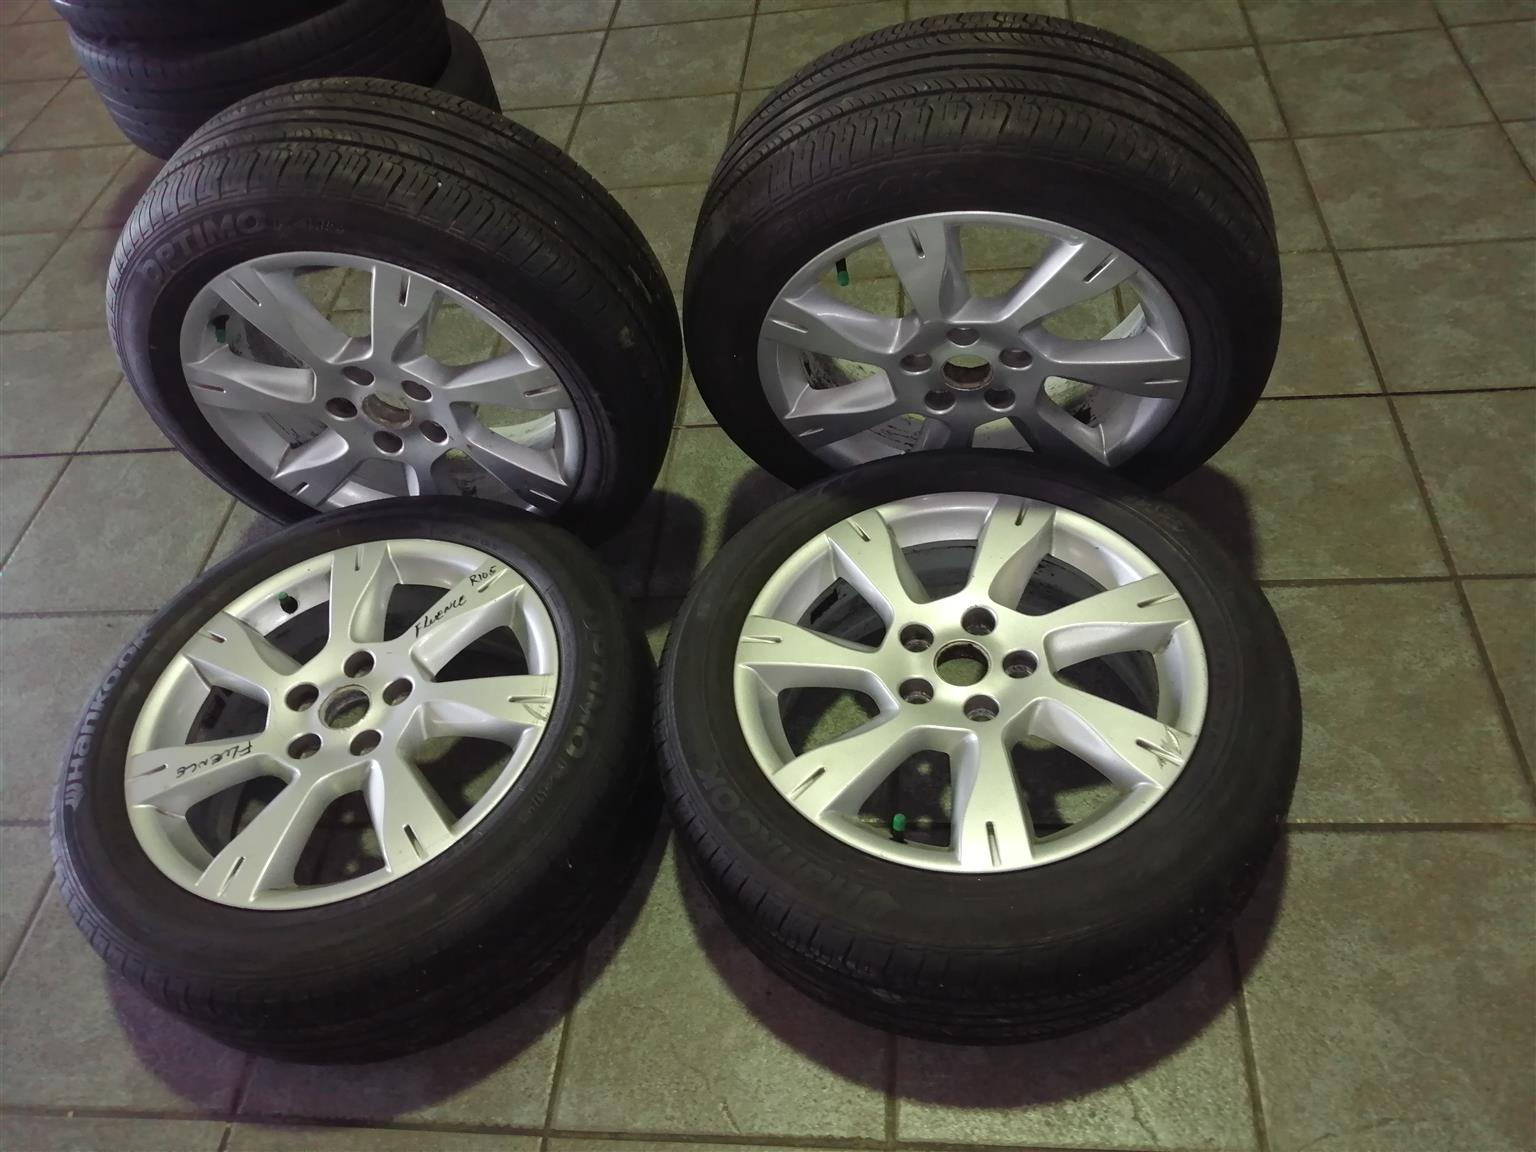 FLUENCE RENAULT WHEEL SET